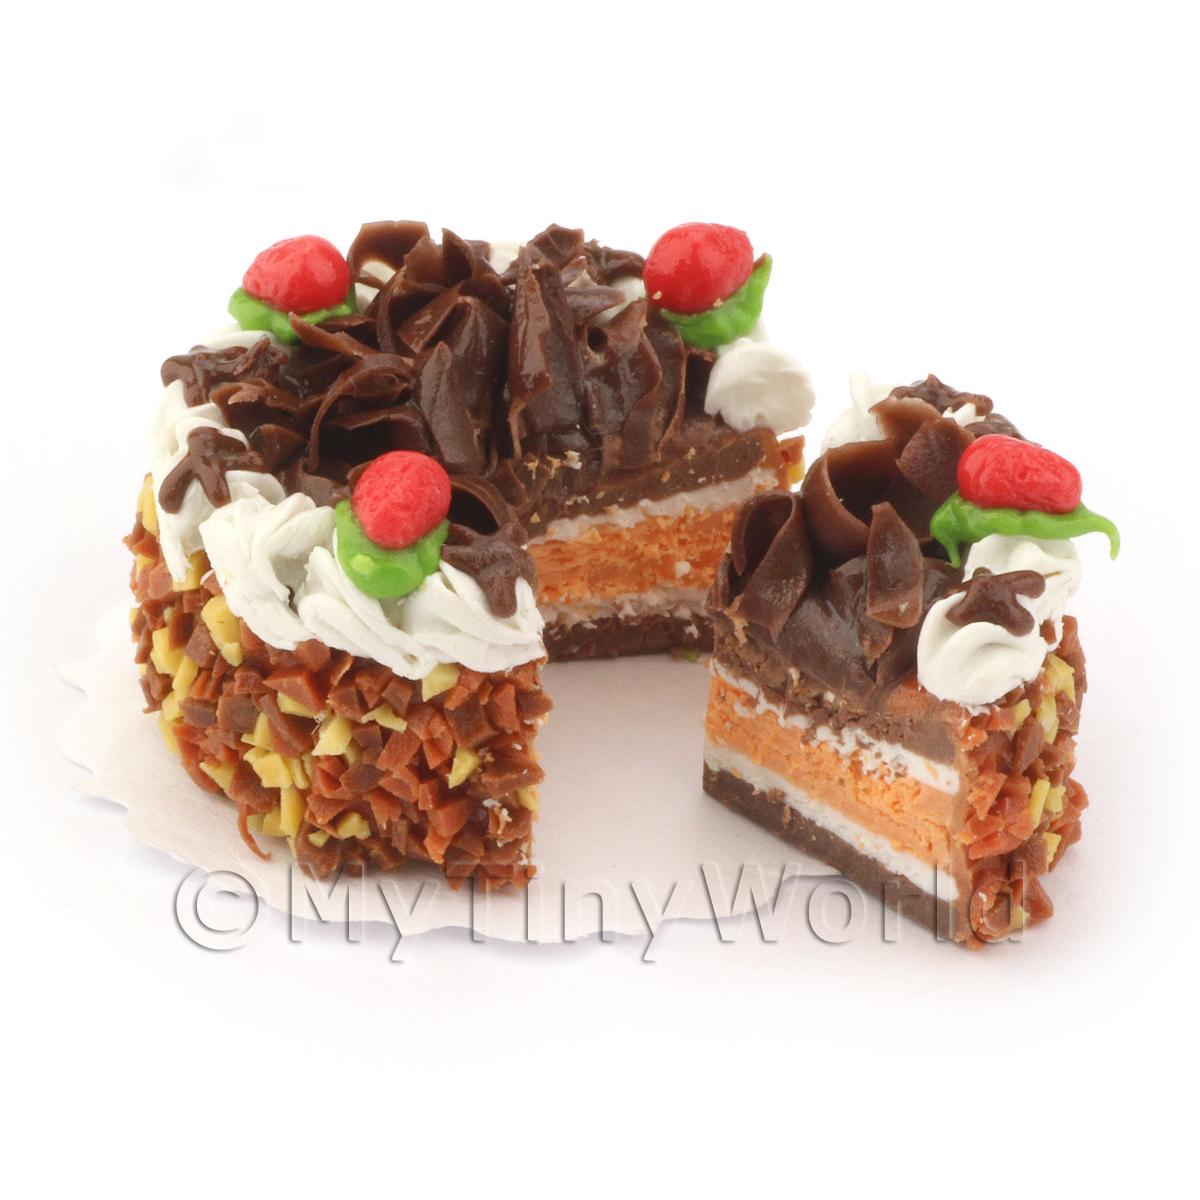 Dolls House Miniature Sliced Chocolate strawberry Cake